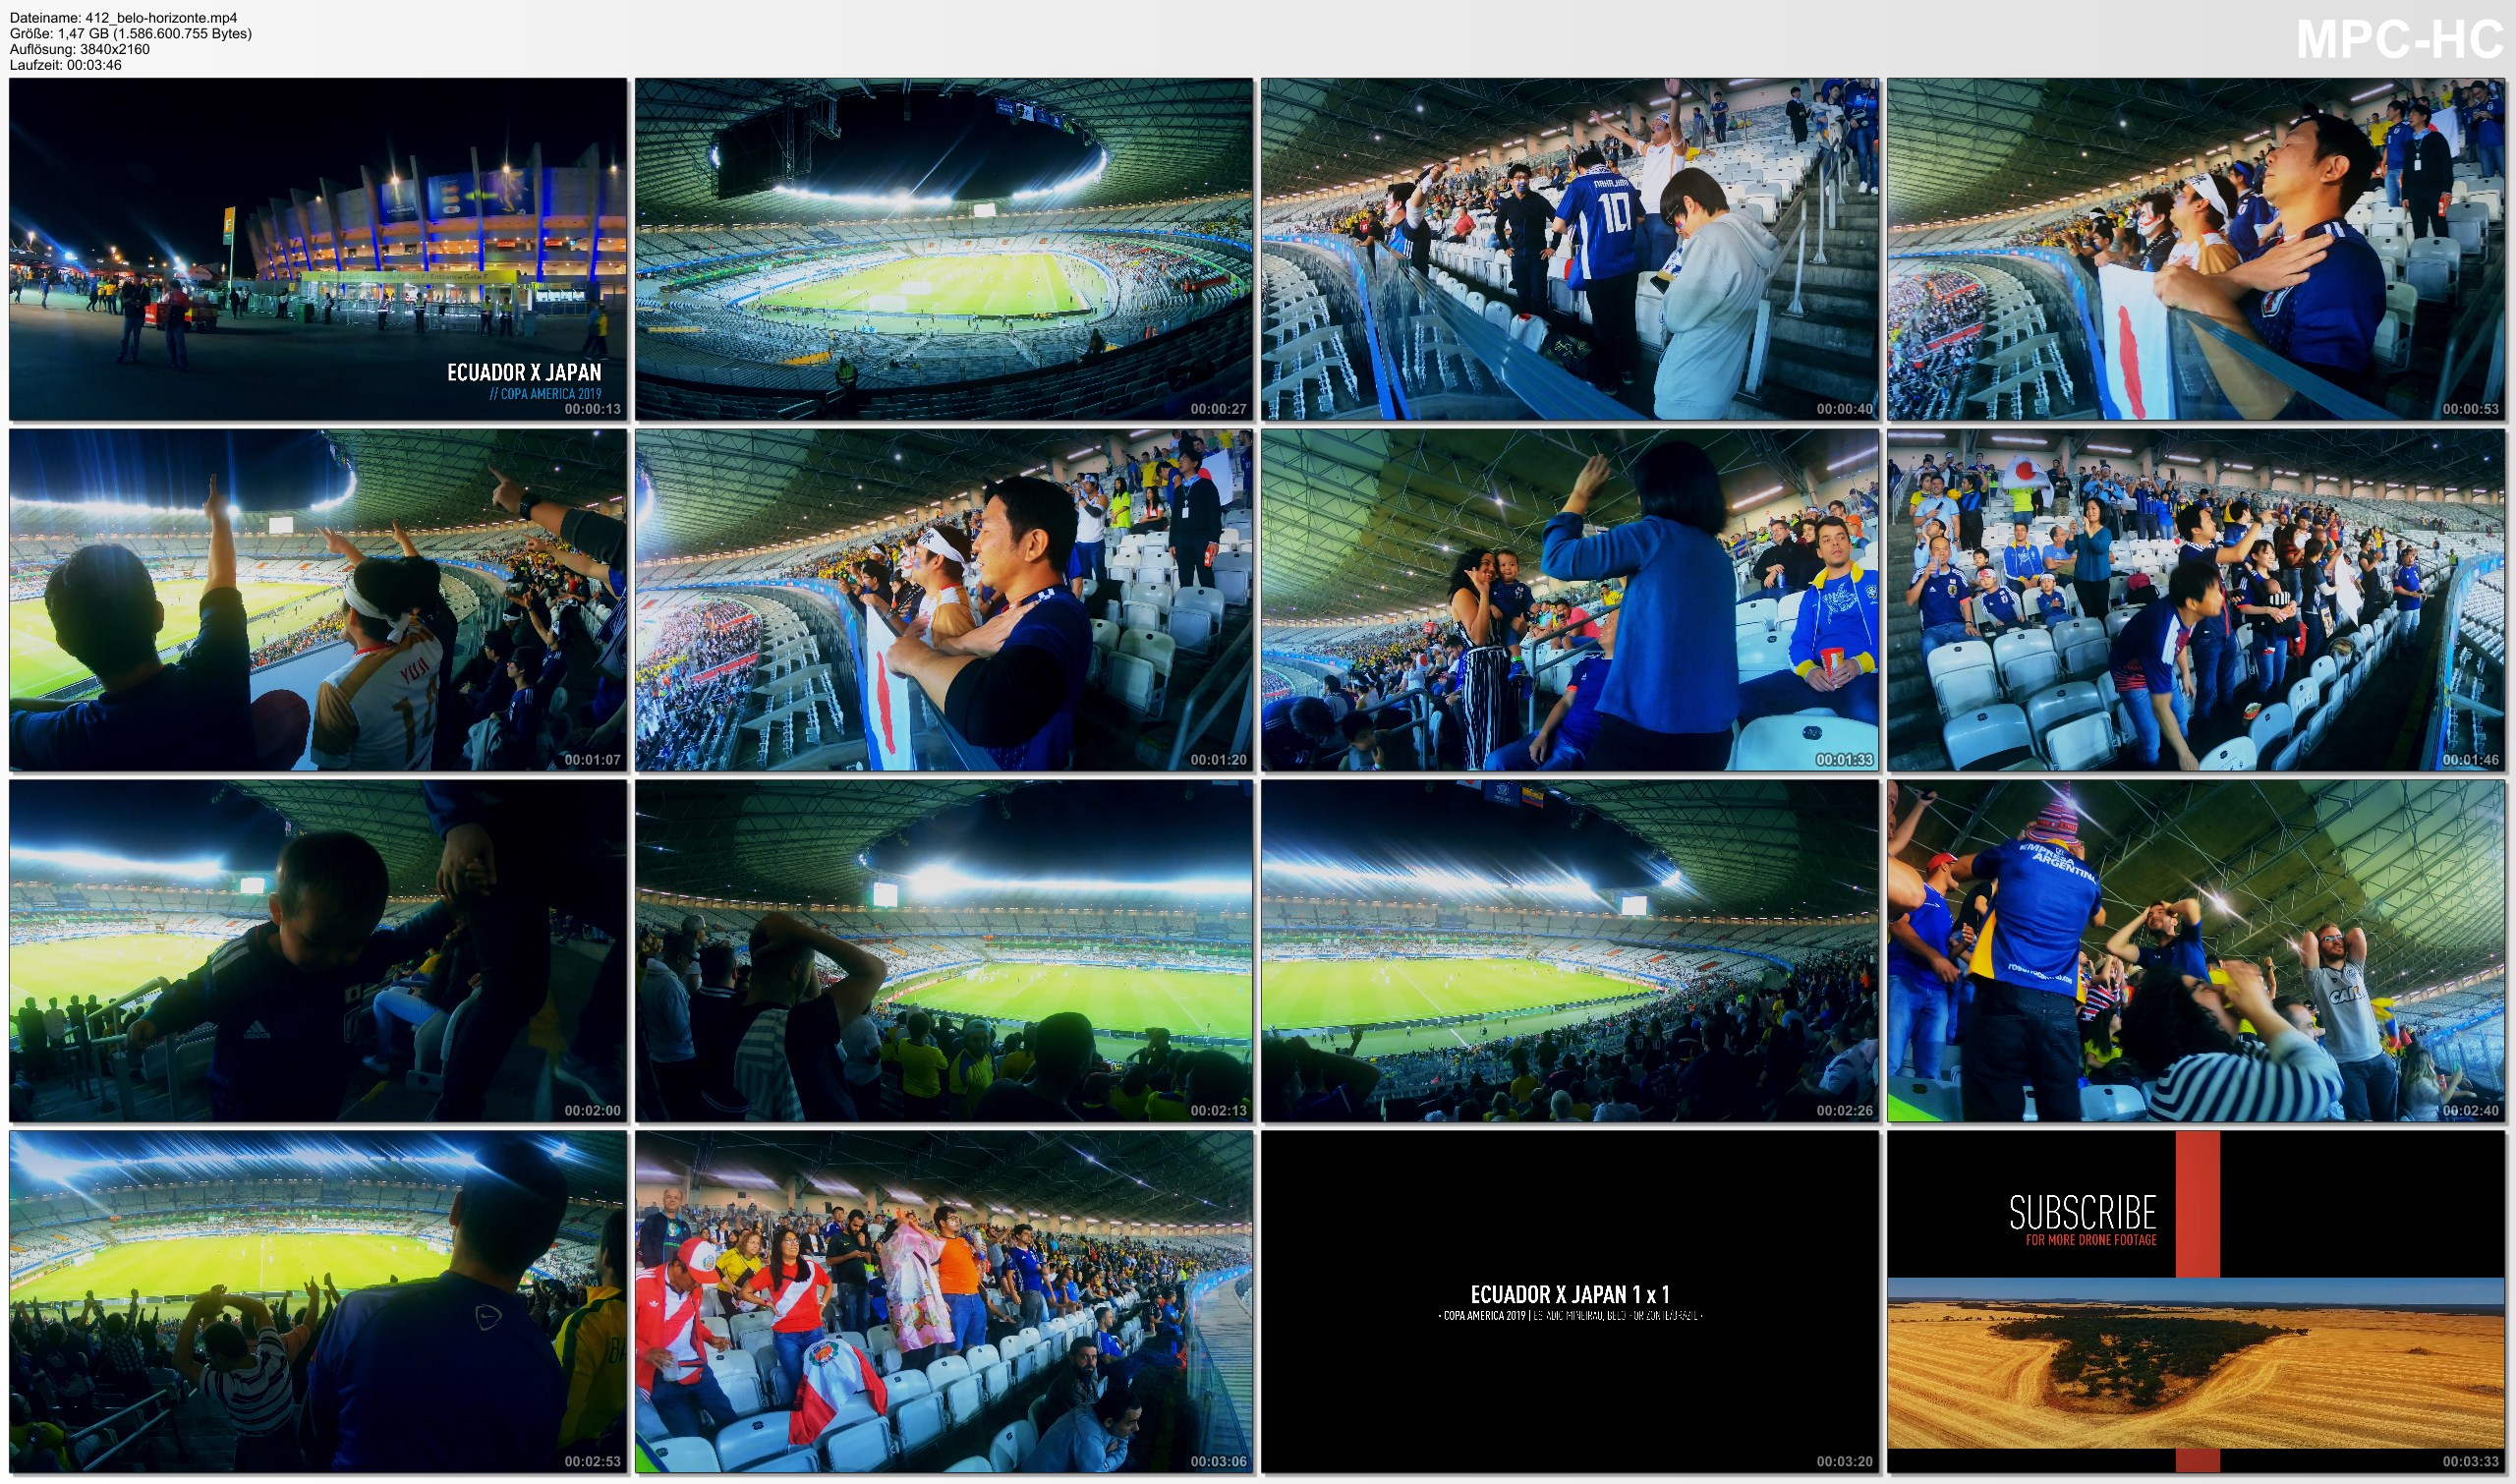 Pictures from Video 【4K】Groundhopping | Ecuador X Japan [1 x 1] 2019-06-24 | COPA AMERICA | Mineirao, Belo Horizonte 日本